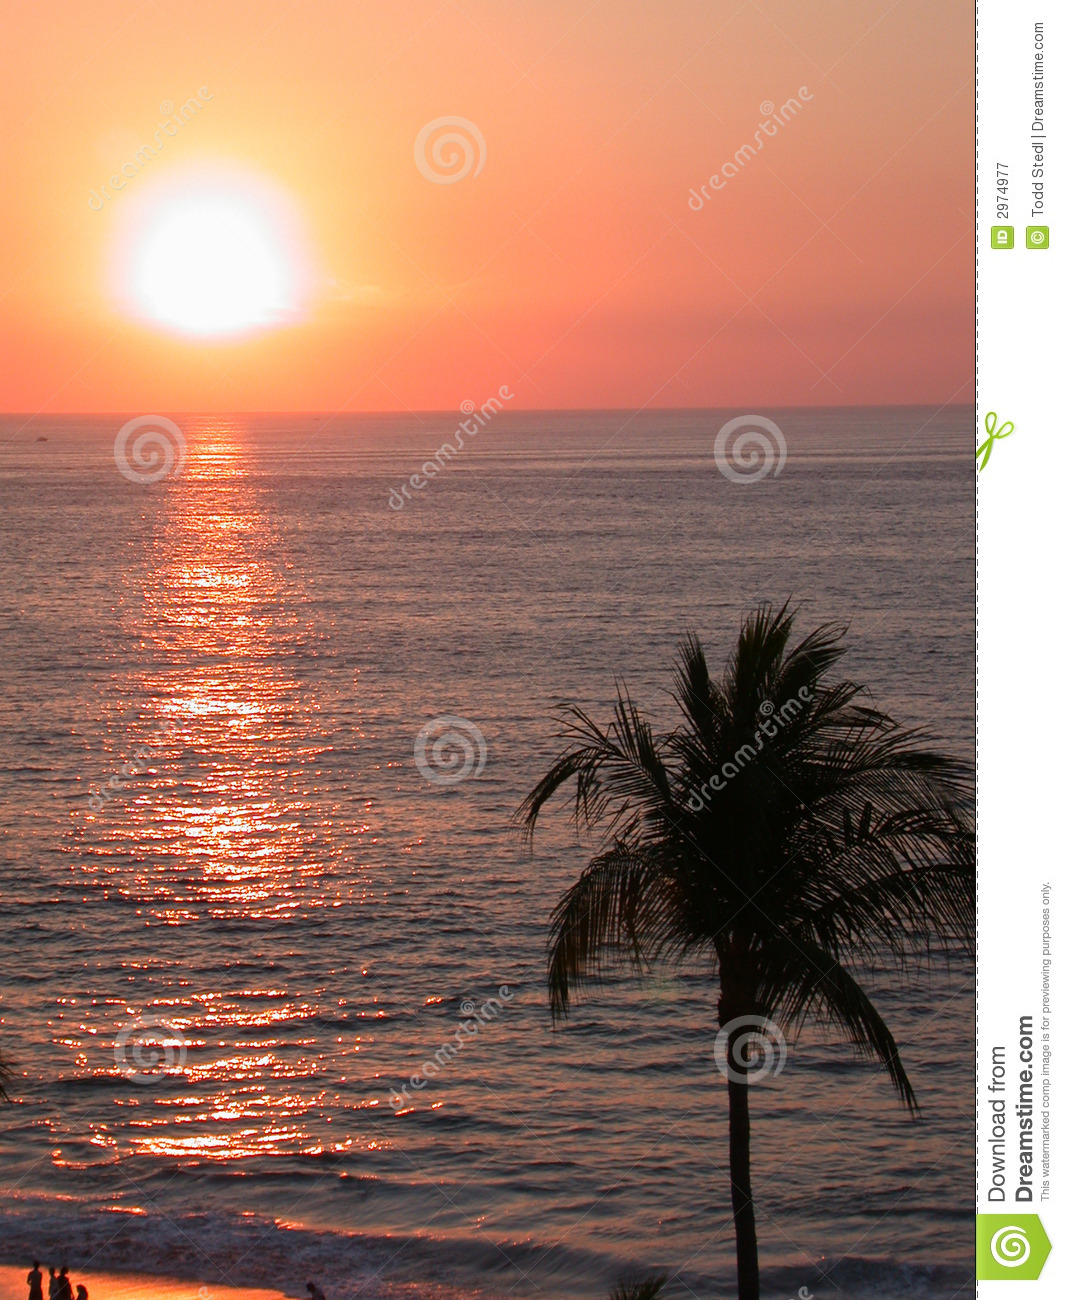 Tropical Beach Sunset Stock Image. Image Of Water, Palm